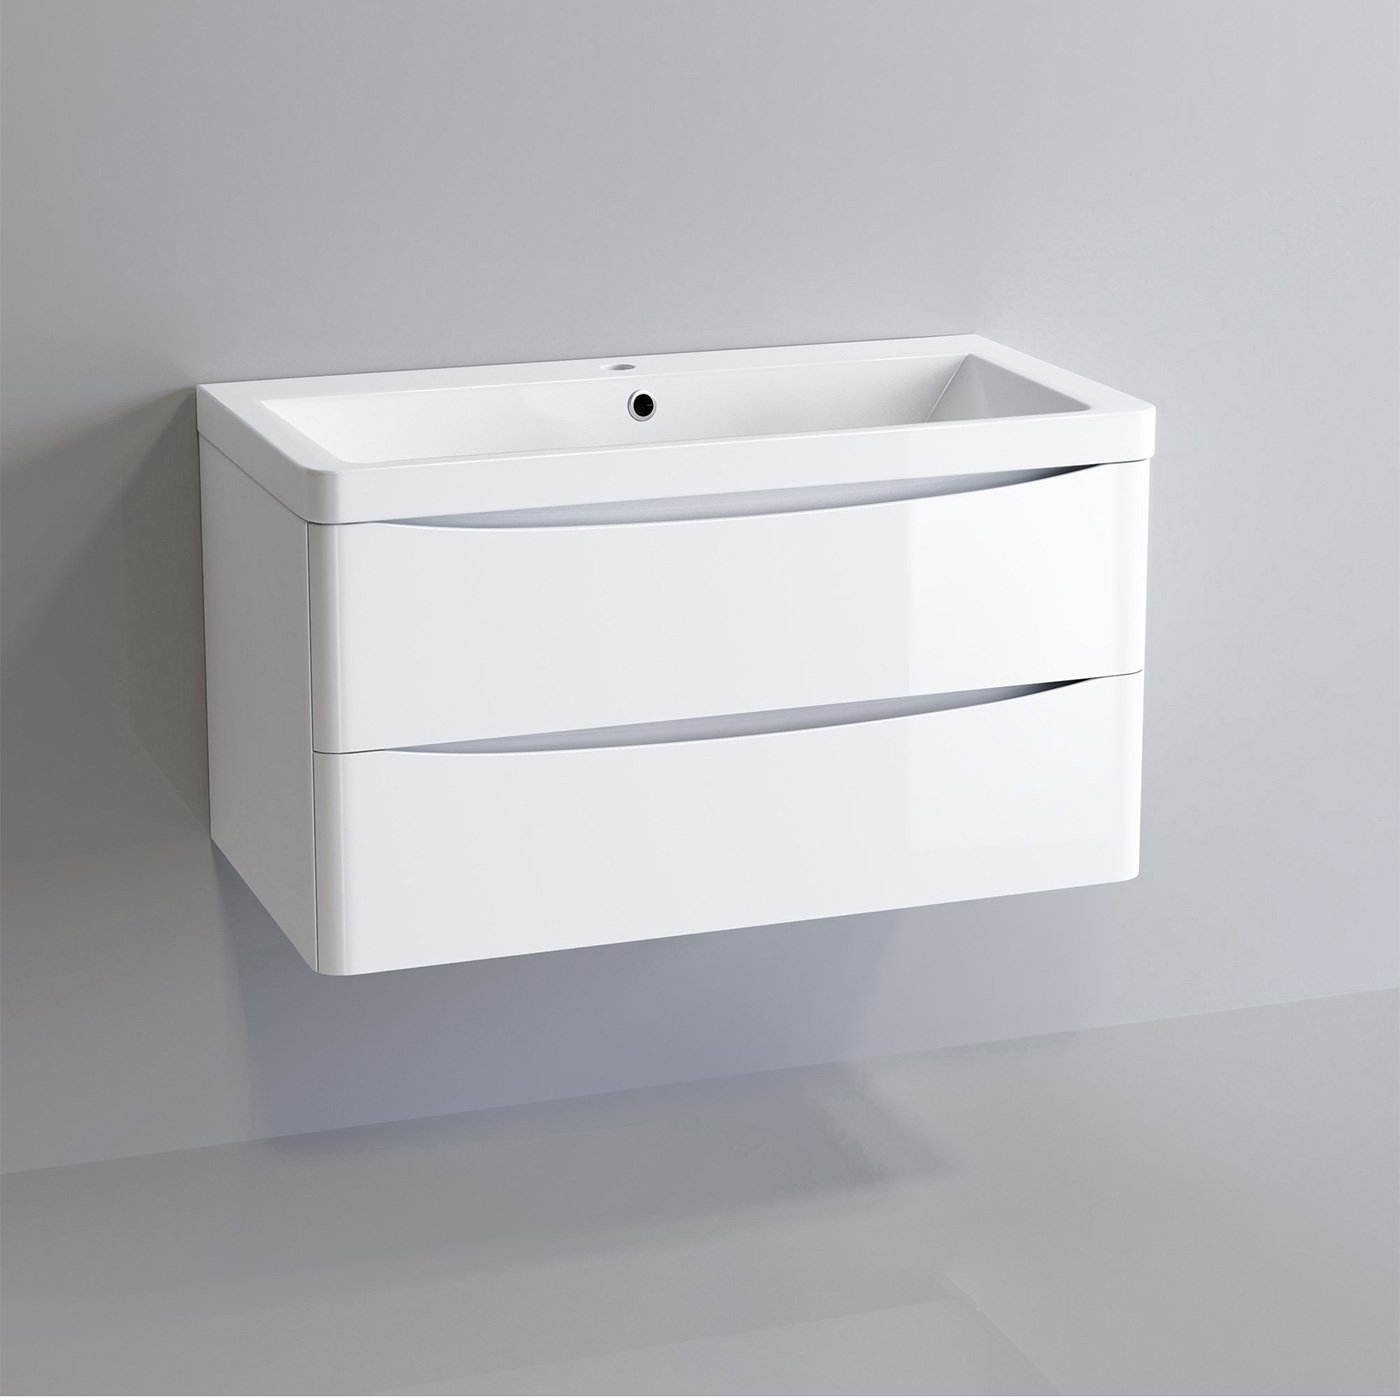 800mm Modern White Vanity Unit Ceramic Sink Wall Hung Bathroom